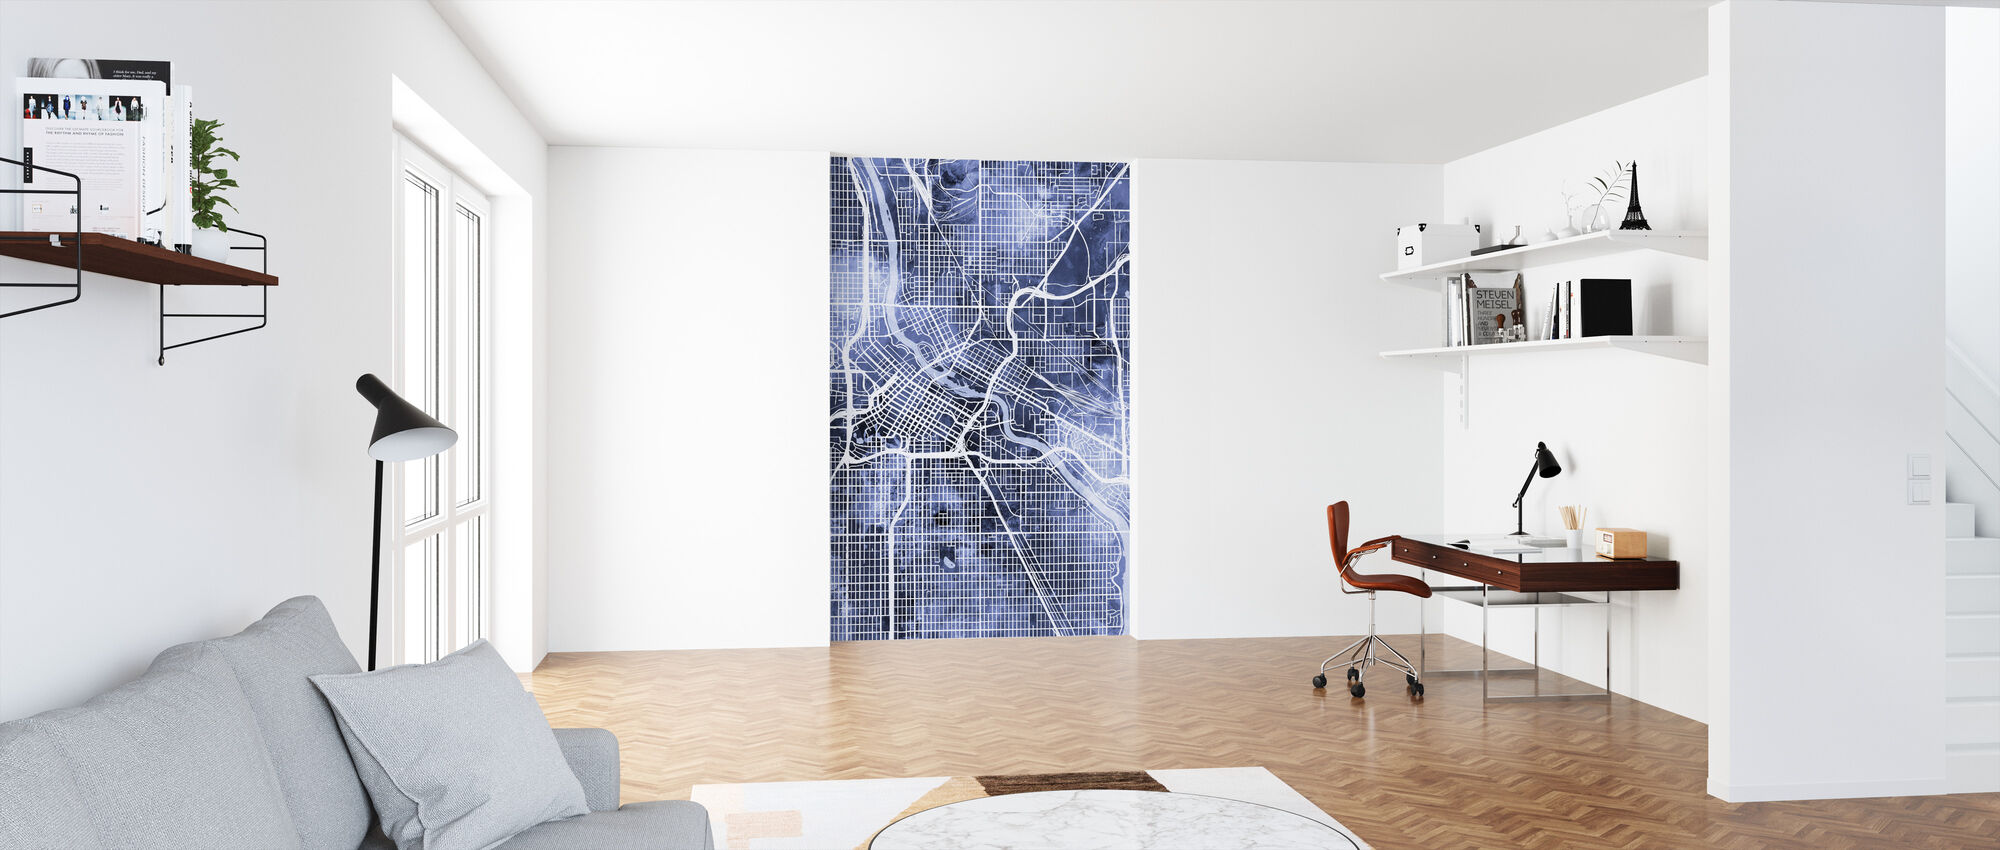 Minneapolis Minnesota City Map - Wallpaper - Office